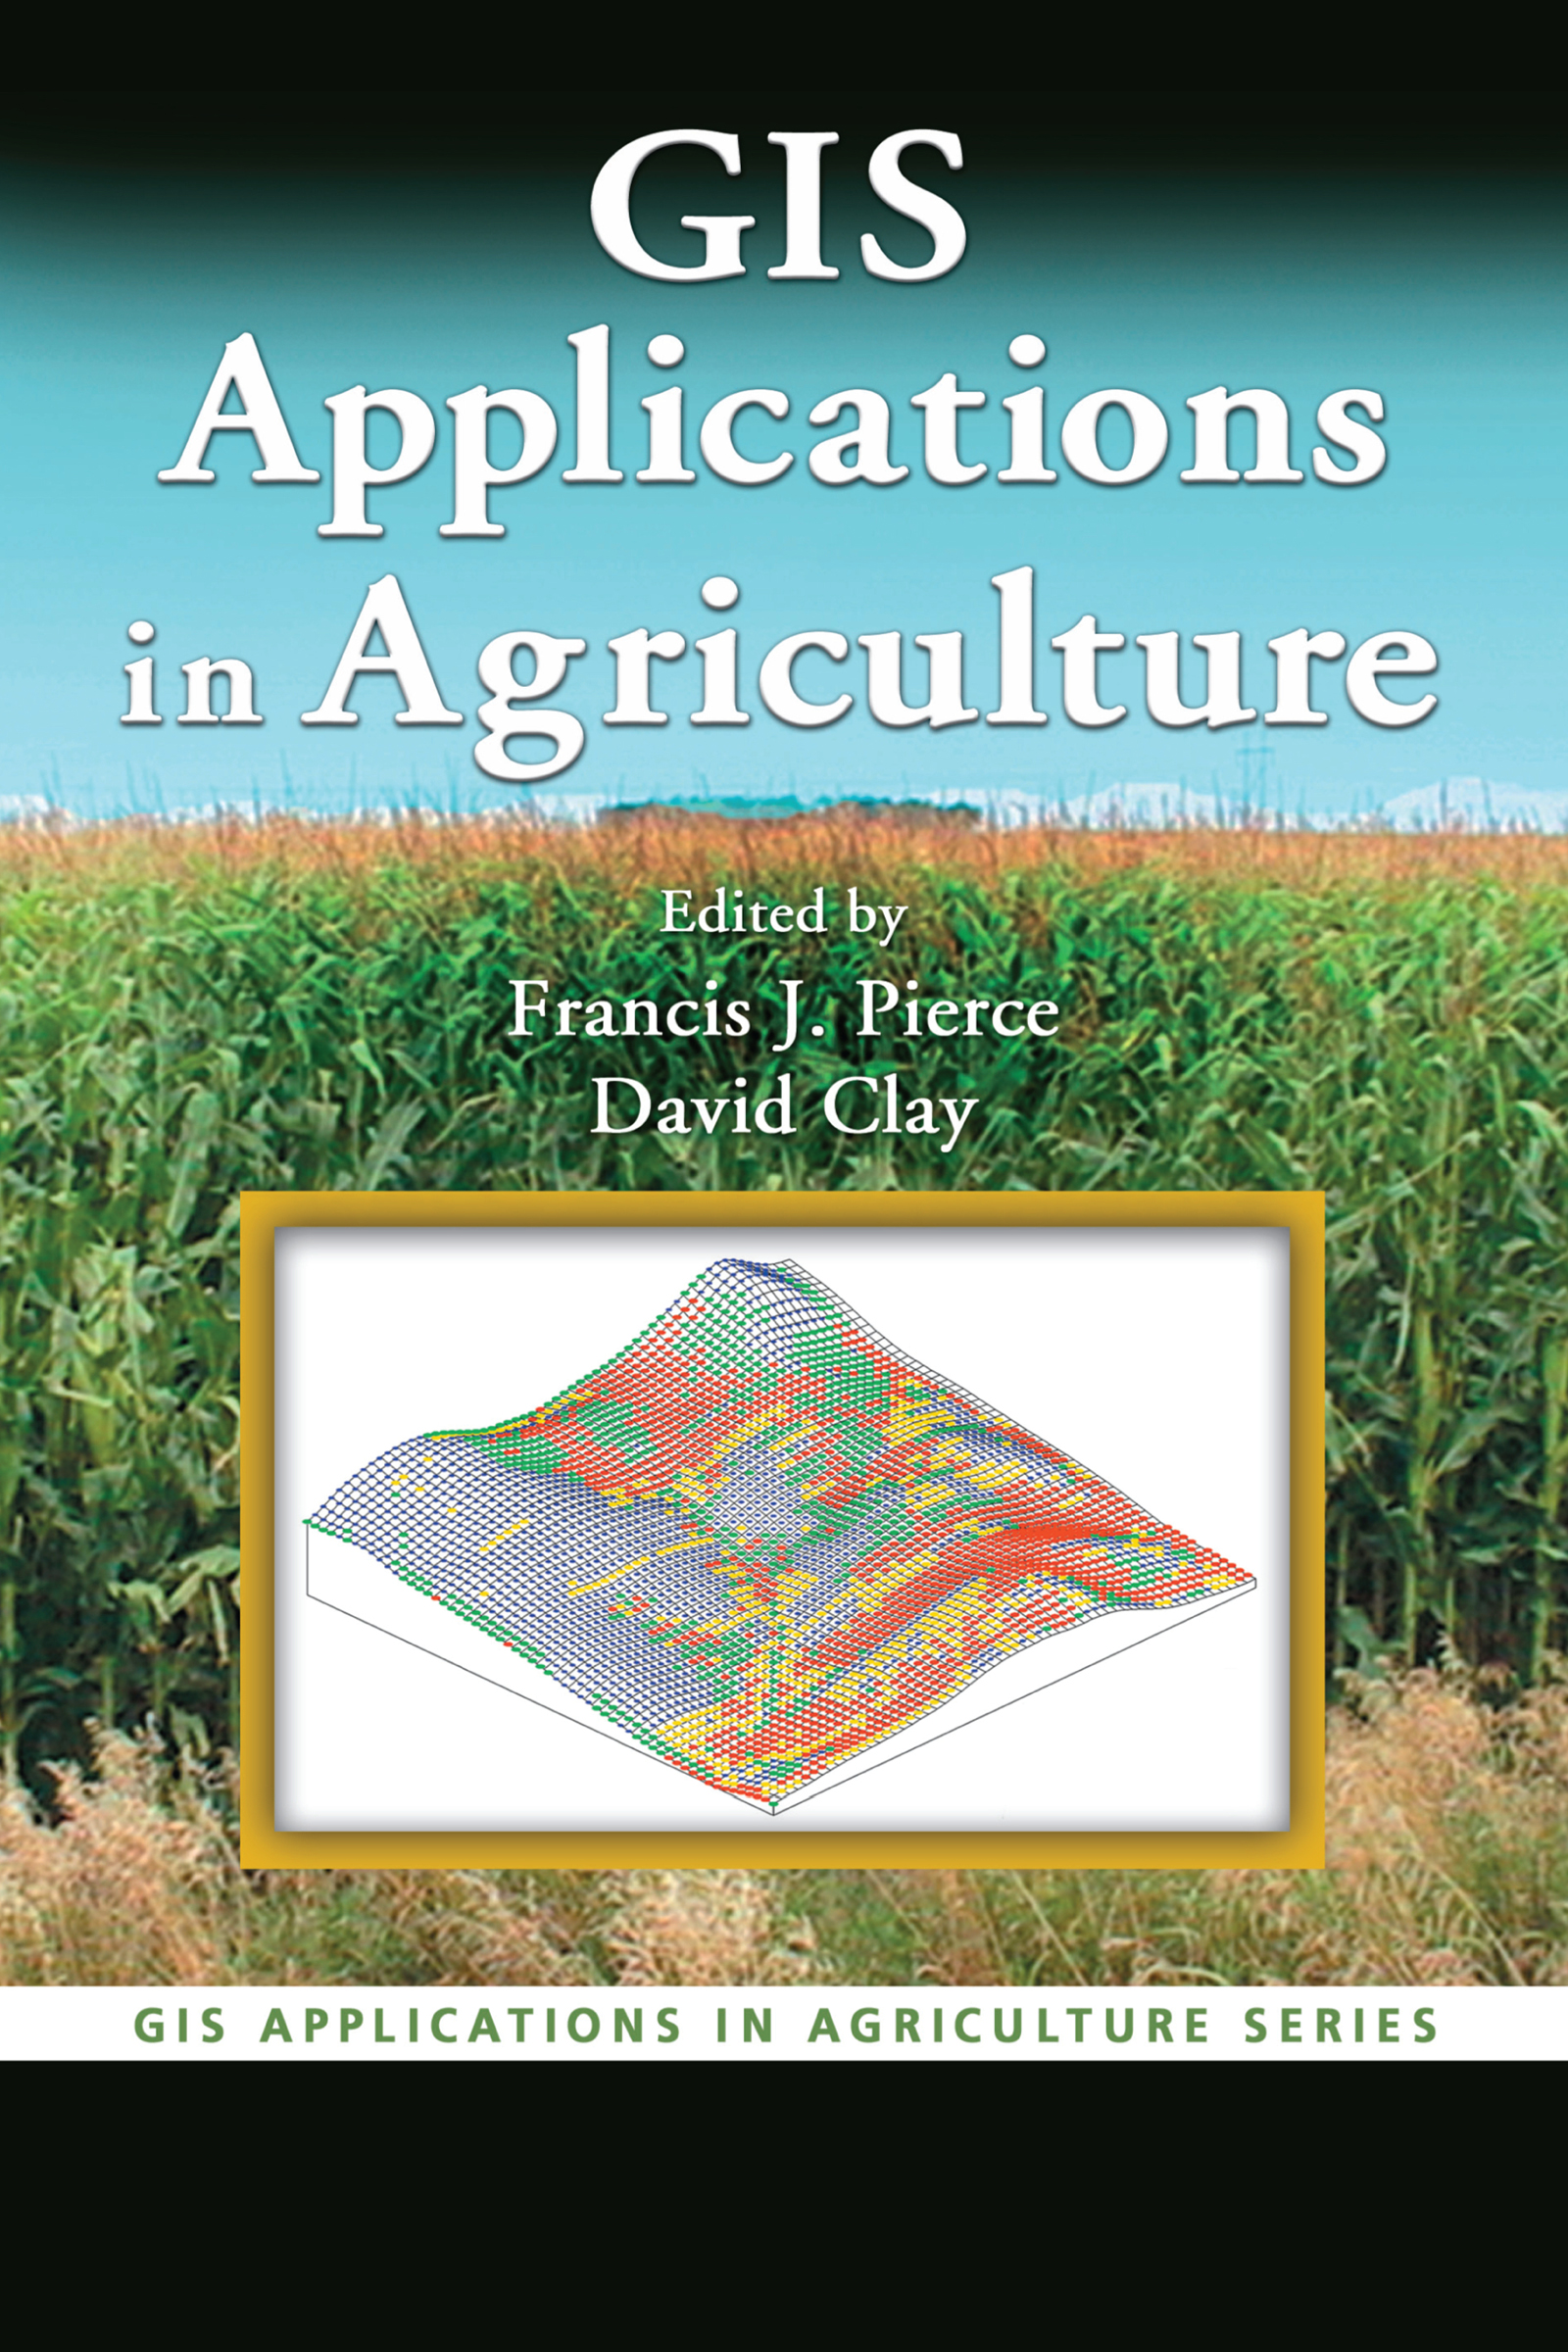 GIS Applications in Agriculture book cover